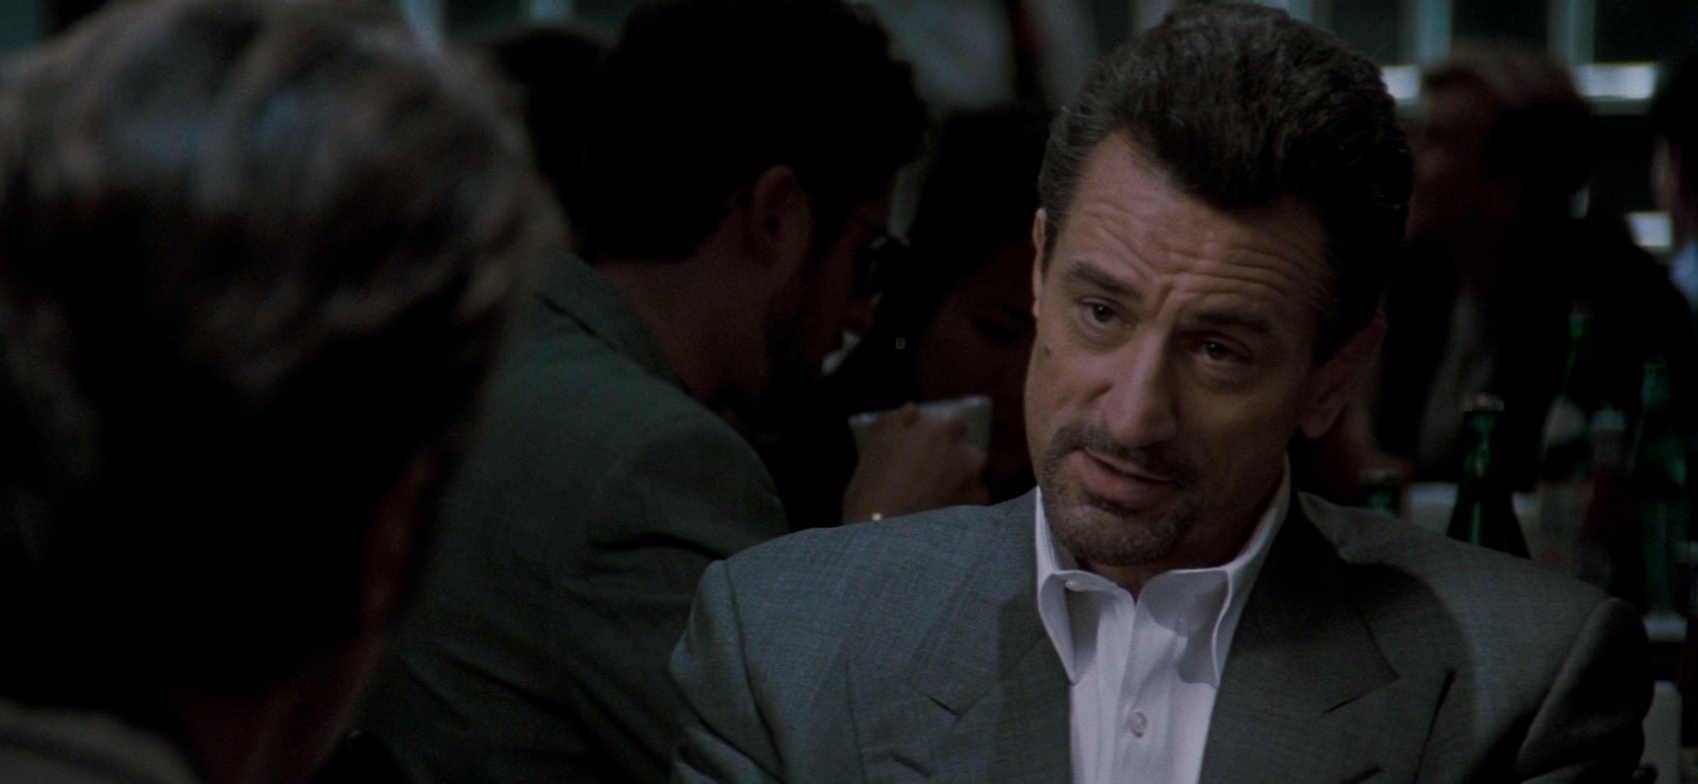 The incredible heat diner scene was never rehearsed by al pacino the incredible heat diner scene was never rehearsed by al pacino robert de niro m4hsunfo